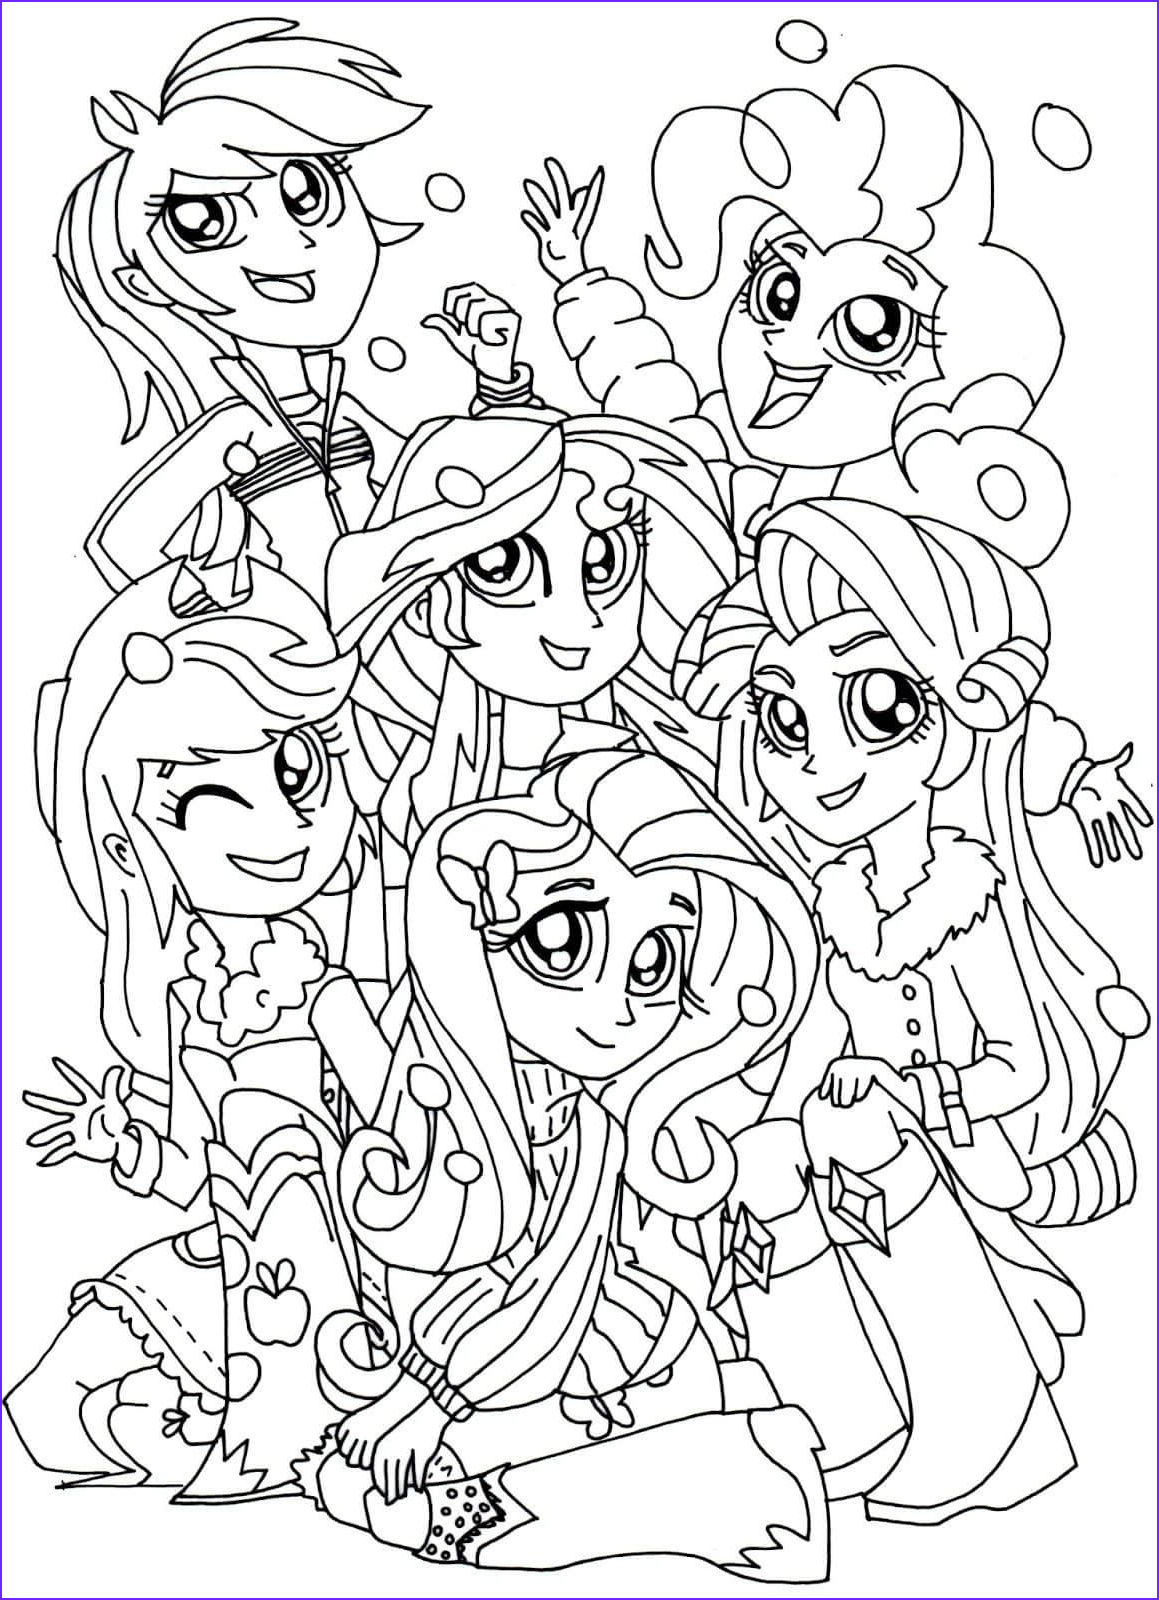 Equestria Girls Coloring Pages Inspirational Image My Little Pony Equestria Girls Coloring Pages